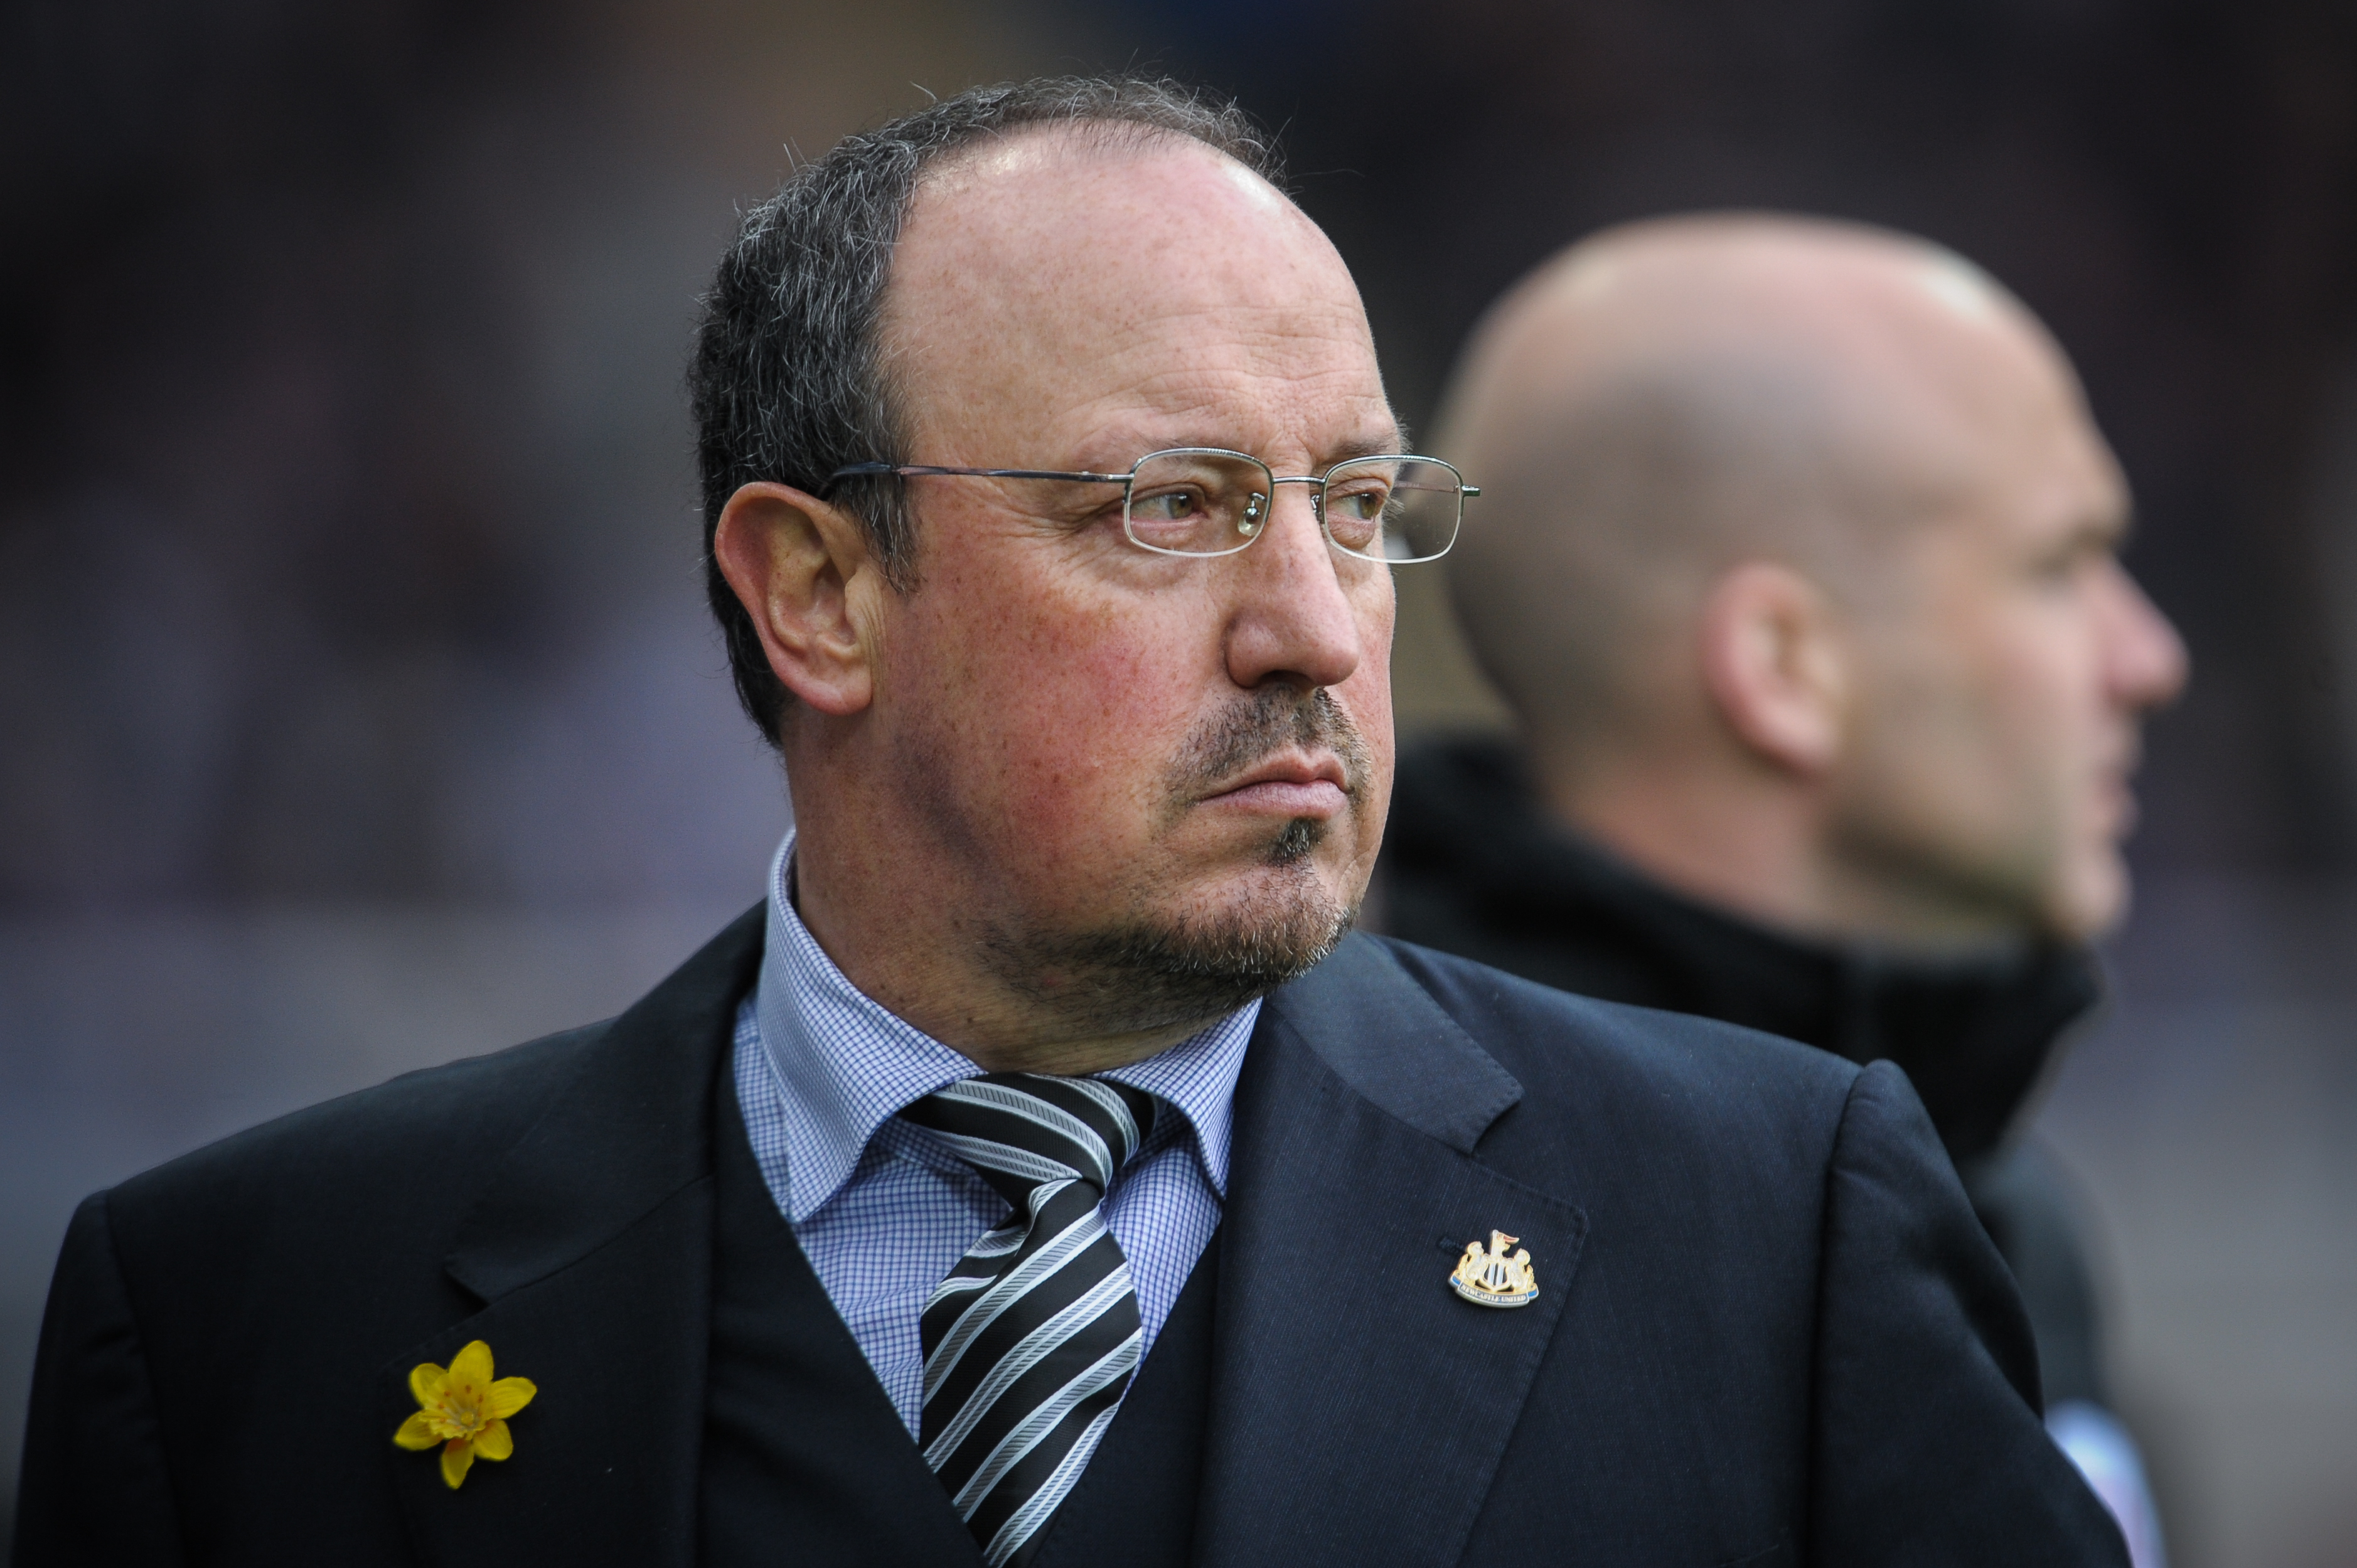 NEWCASTLE UPON TYNE, ENGLAND - MARCH 20: Newcastle's Manager Rafael Benitez during the Premier League match between Newcastle United and Sunderland at St.James' Park, on March 20, 2016, in Newcastle upon Tyne, England. (Photo by Serena Taylor/Newcastle United via Getty Images)